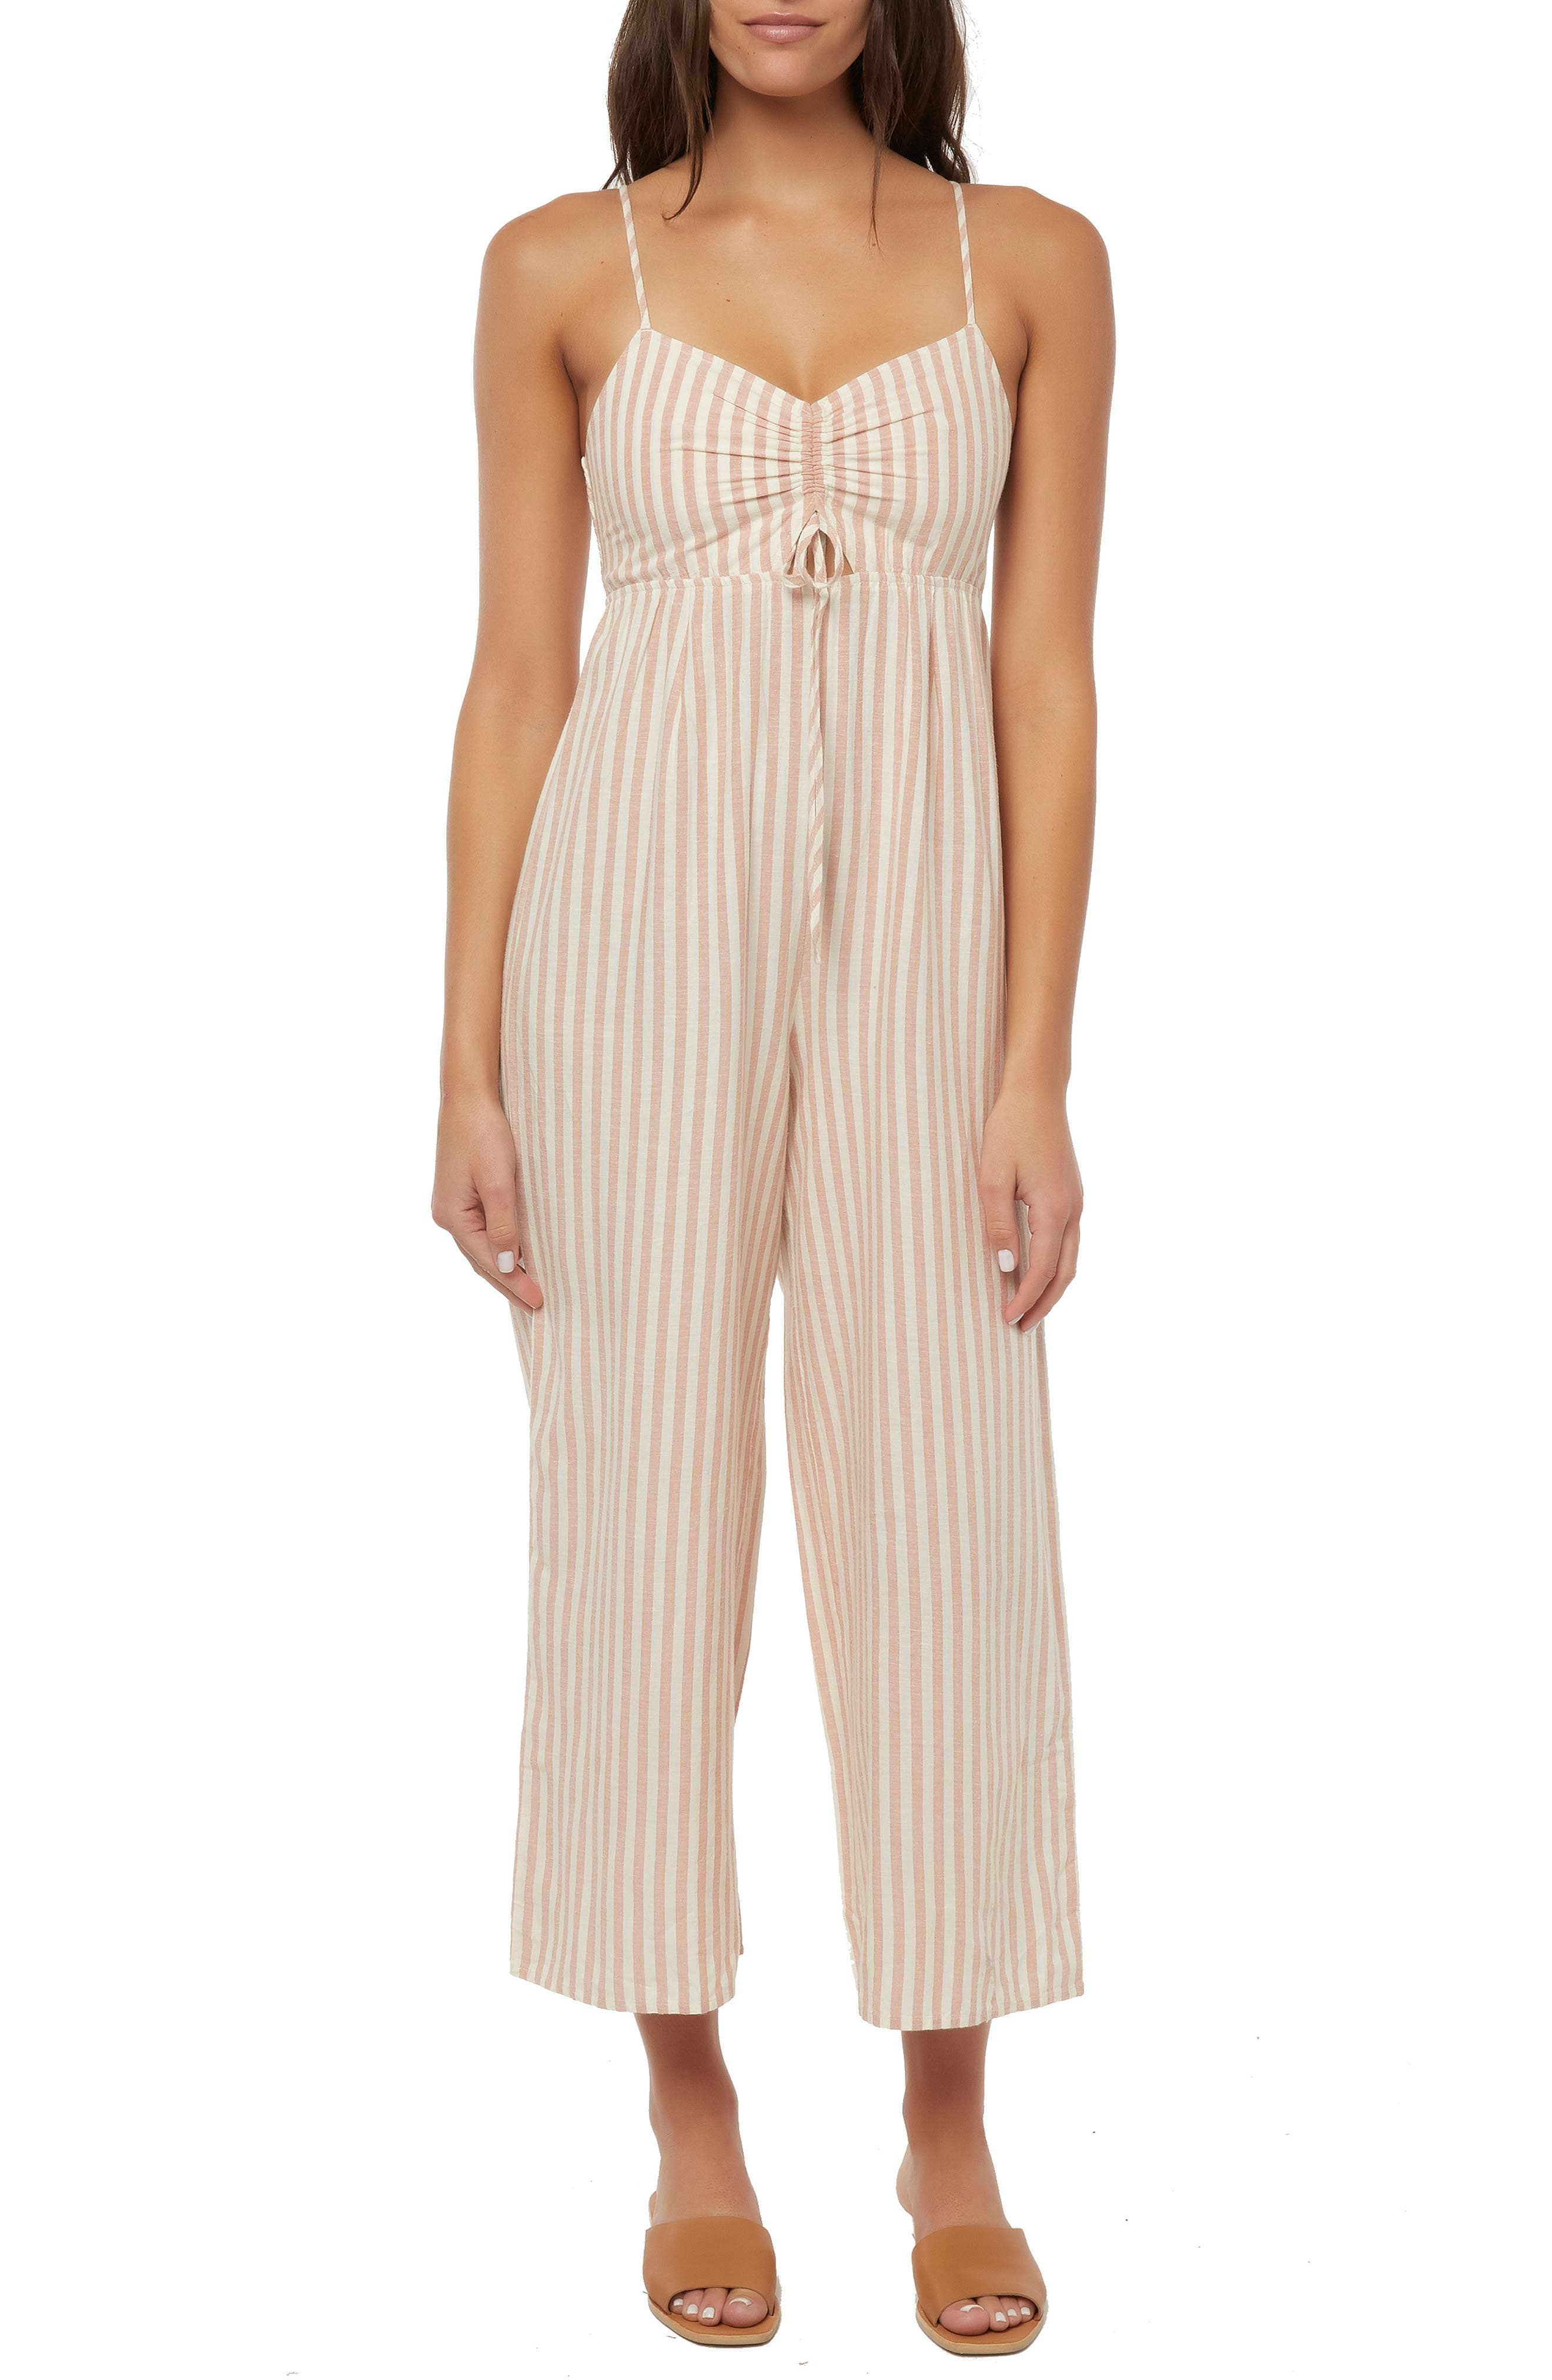 O'NEILL, Anabella Stripe Ruched Jumpsuit, Main thumbnail 1, color, NAKED